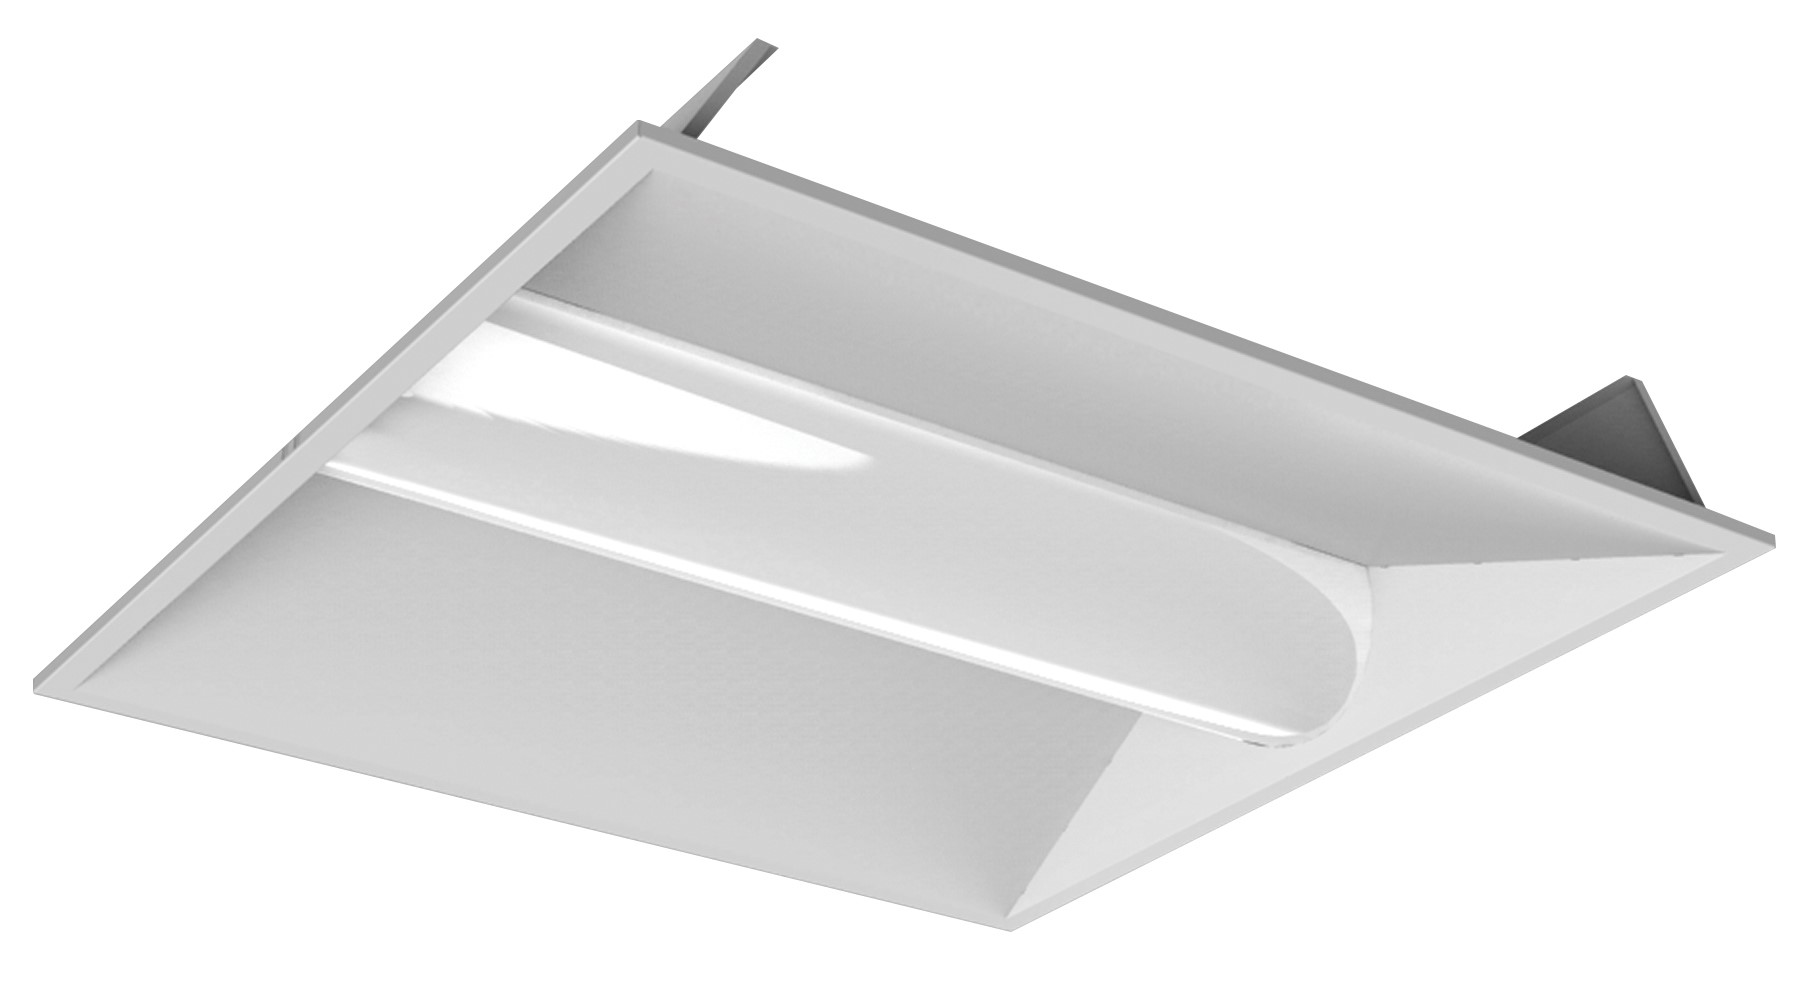 22TFR35/840/LED 80890 LED VOLUMETRIC PANEL 2X2 35W 4000K 0-10V DIMMABLE